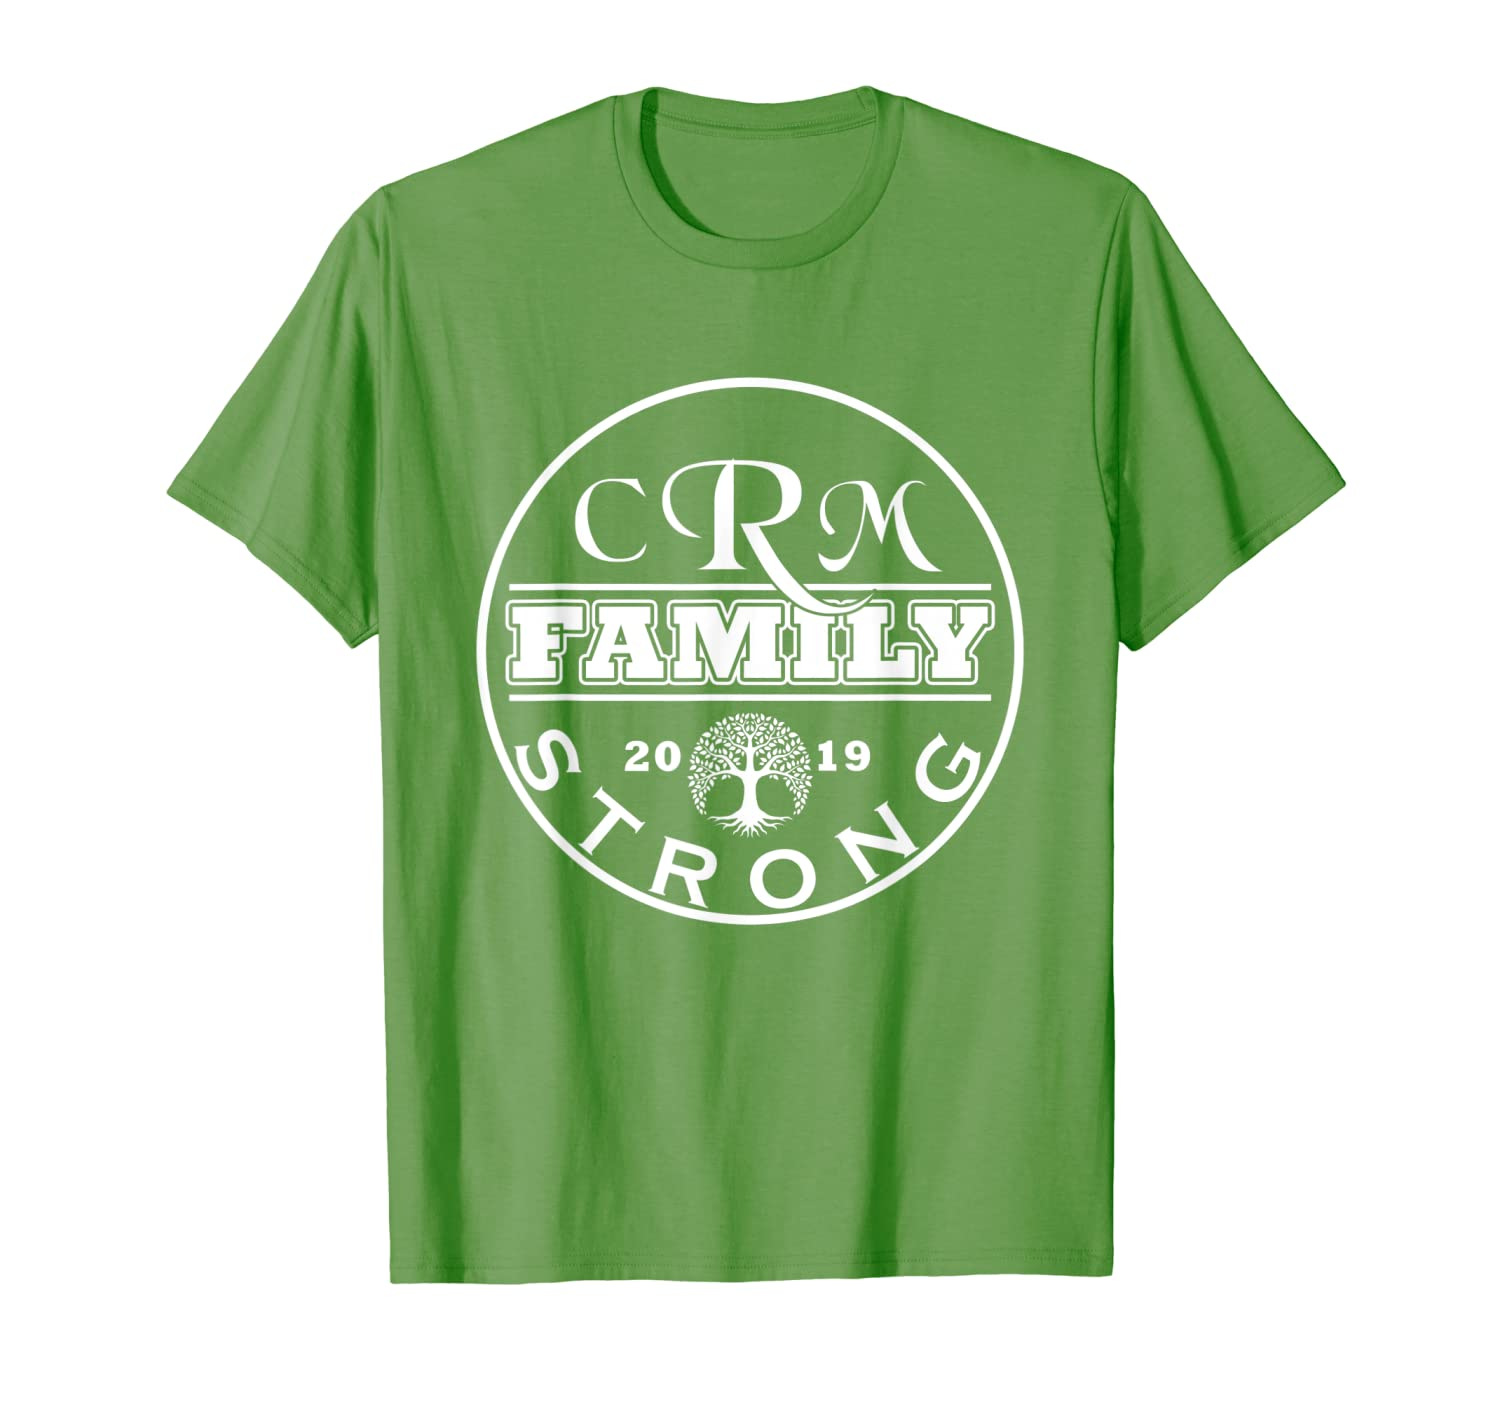 Crm Family Strong 2019 Family Reunion Shirt